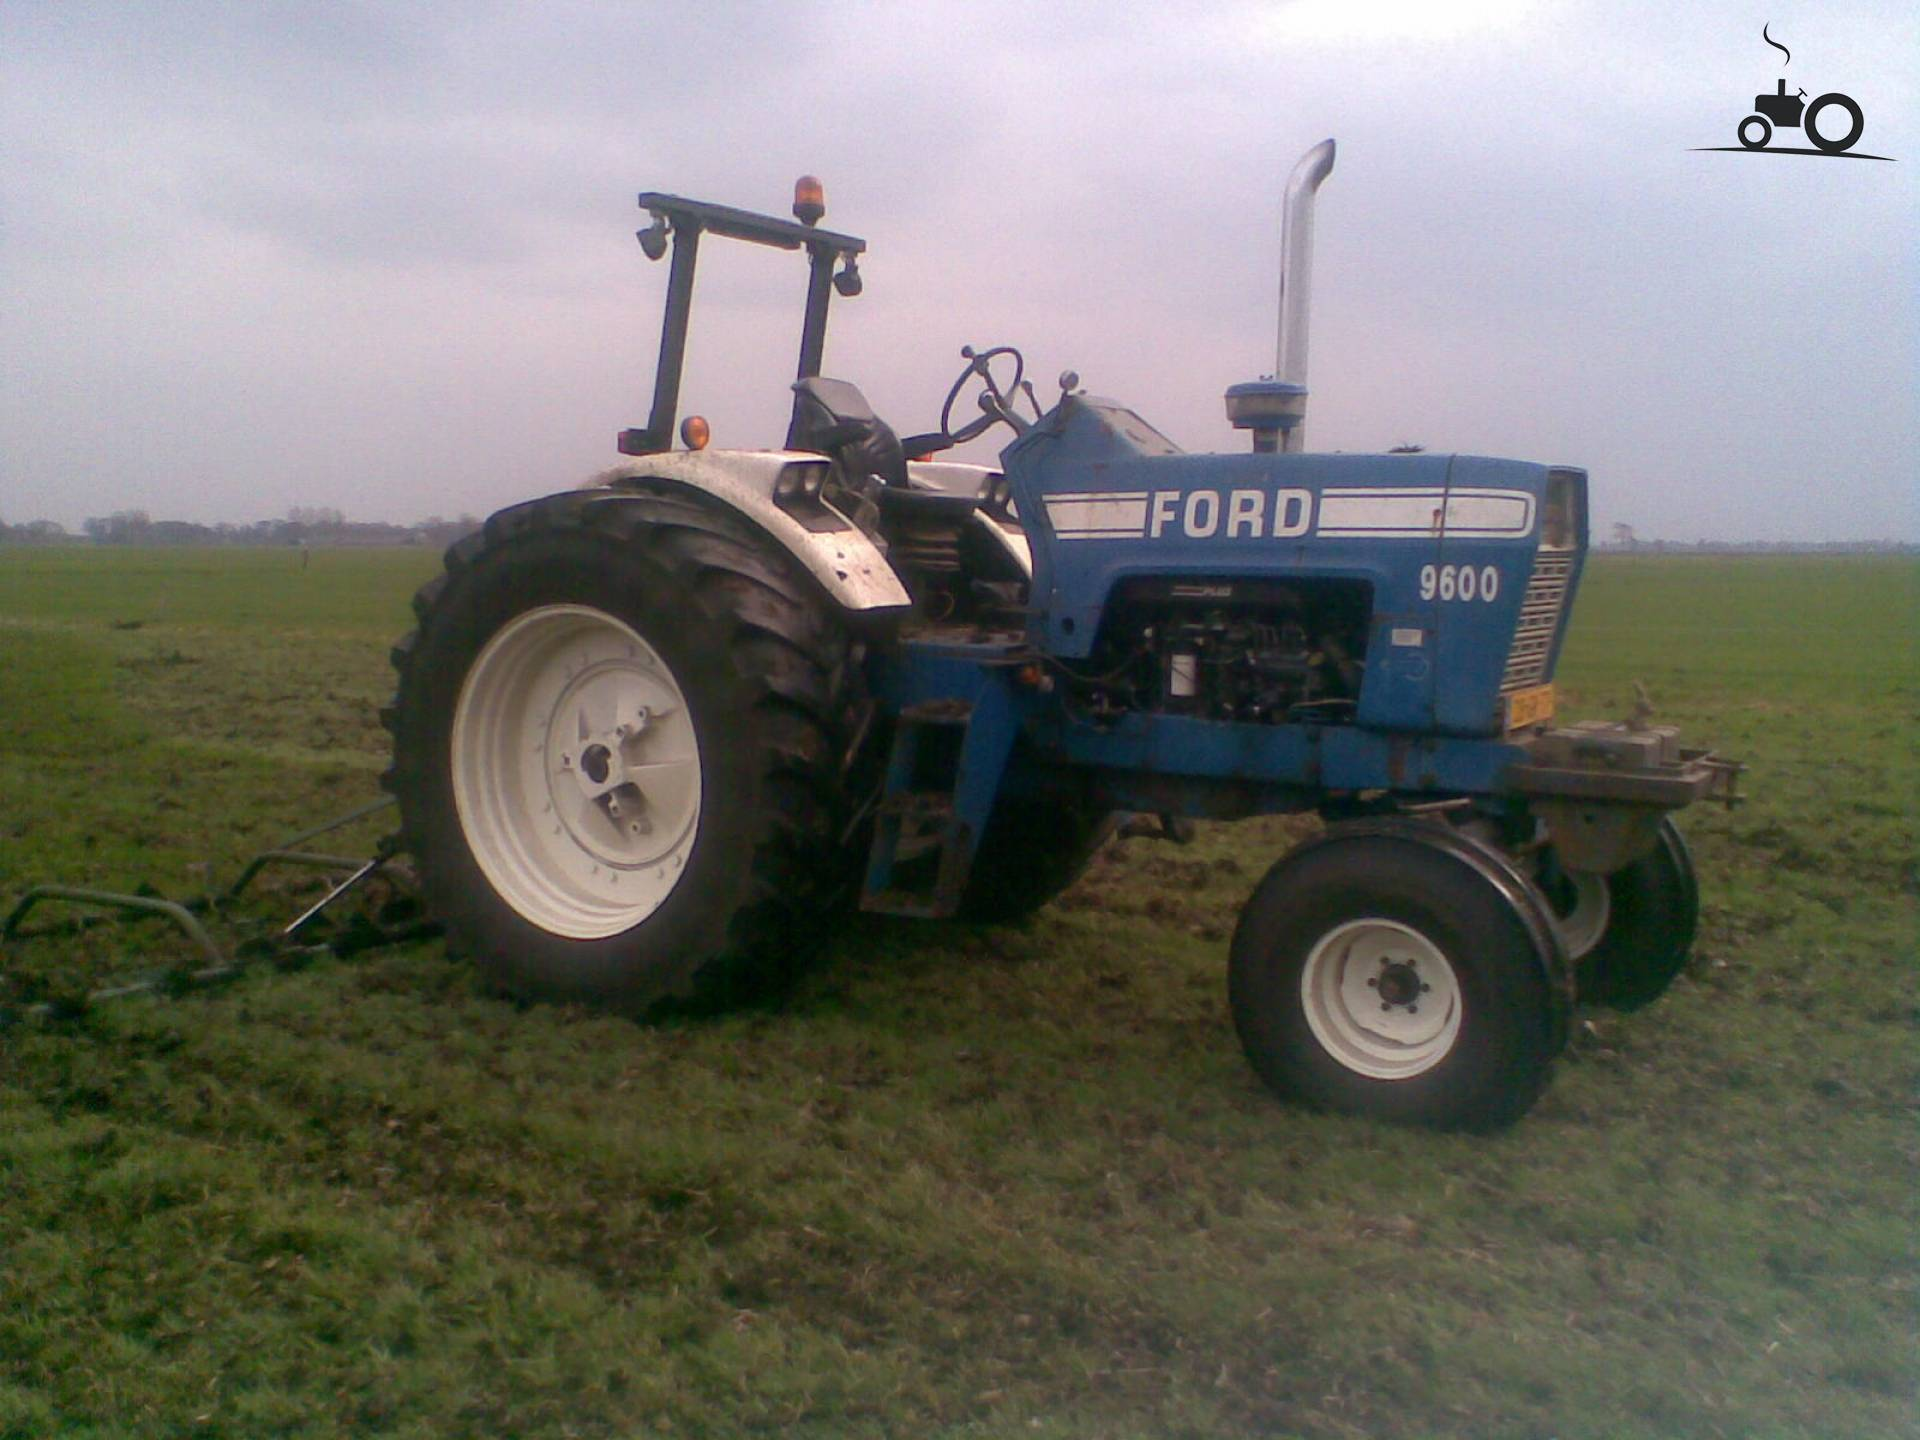 fordson tractor craigslist with Ford 9600 on 7C 7Ci160 photobucket   7Calbums 7Ct195 7Cwes2880 7CFord 20801 20Powermaster 20Diesel 7CRebuiltPump moreover 13 together with Fordson further Tractors 2 also Farmall Cub Serial Number Location.